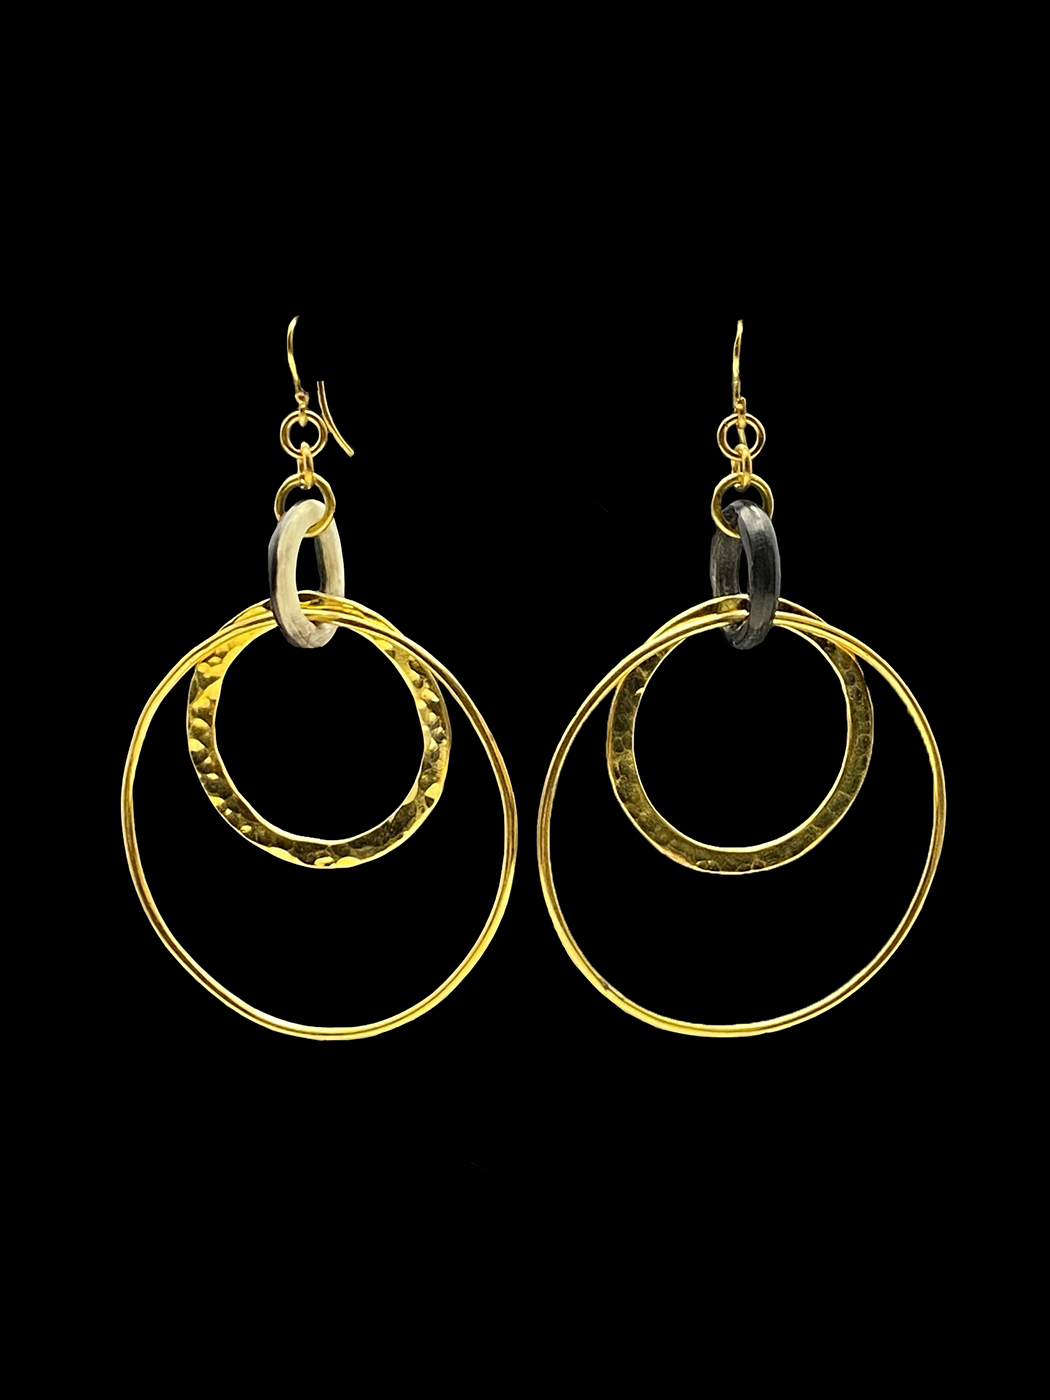 Hammered Brass and Horn Earrings - Kenya